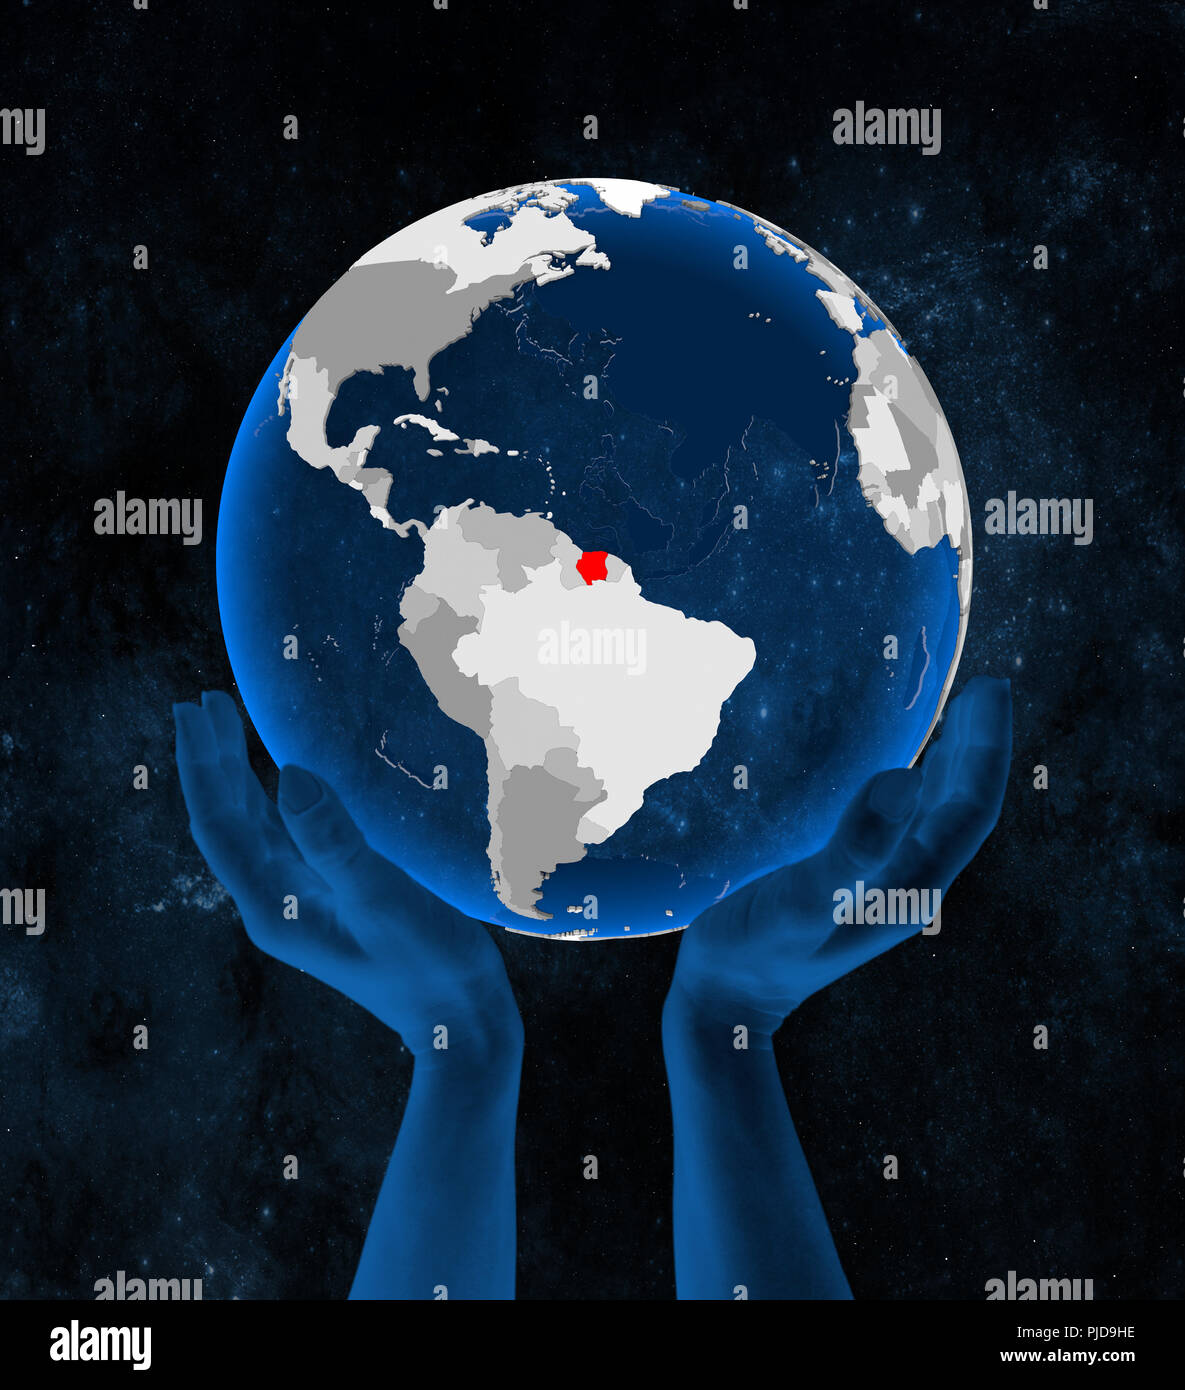 Suriname on translucent blue globe held in hands in space. 3D illustration. - Stock Image